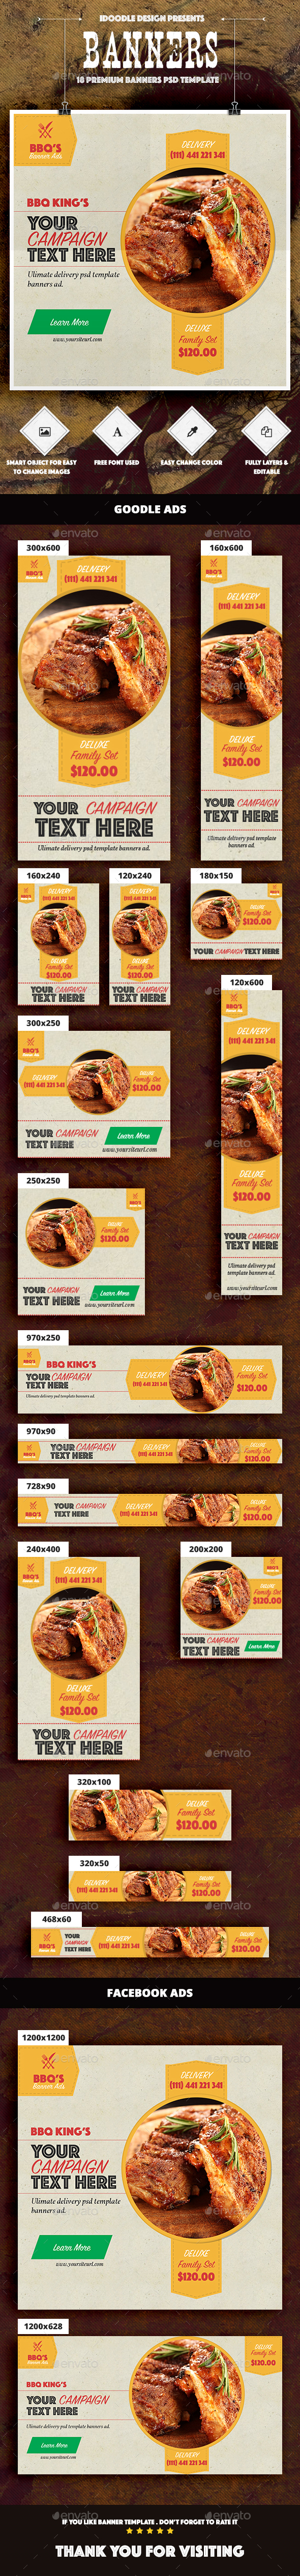 BBQ Food & Restaurant Banners Ad - Banners & Ads Web Elements